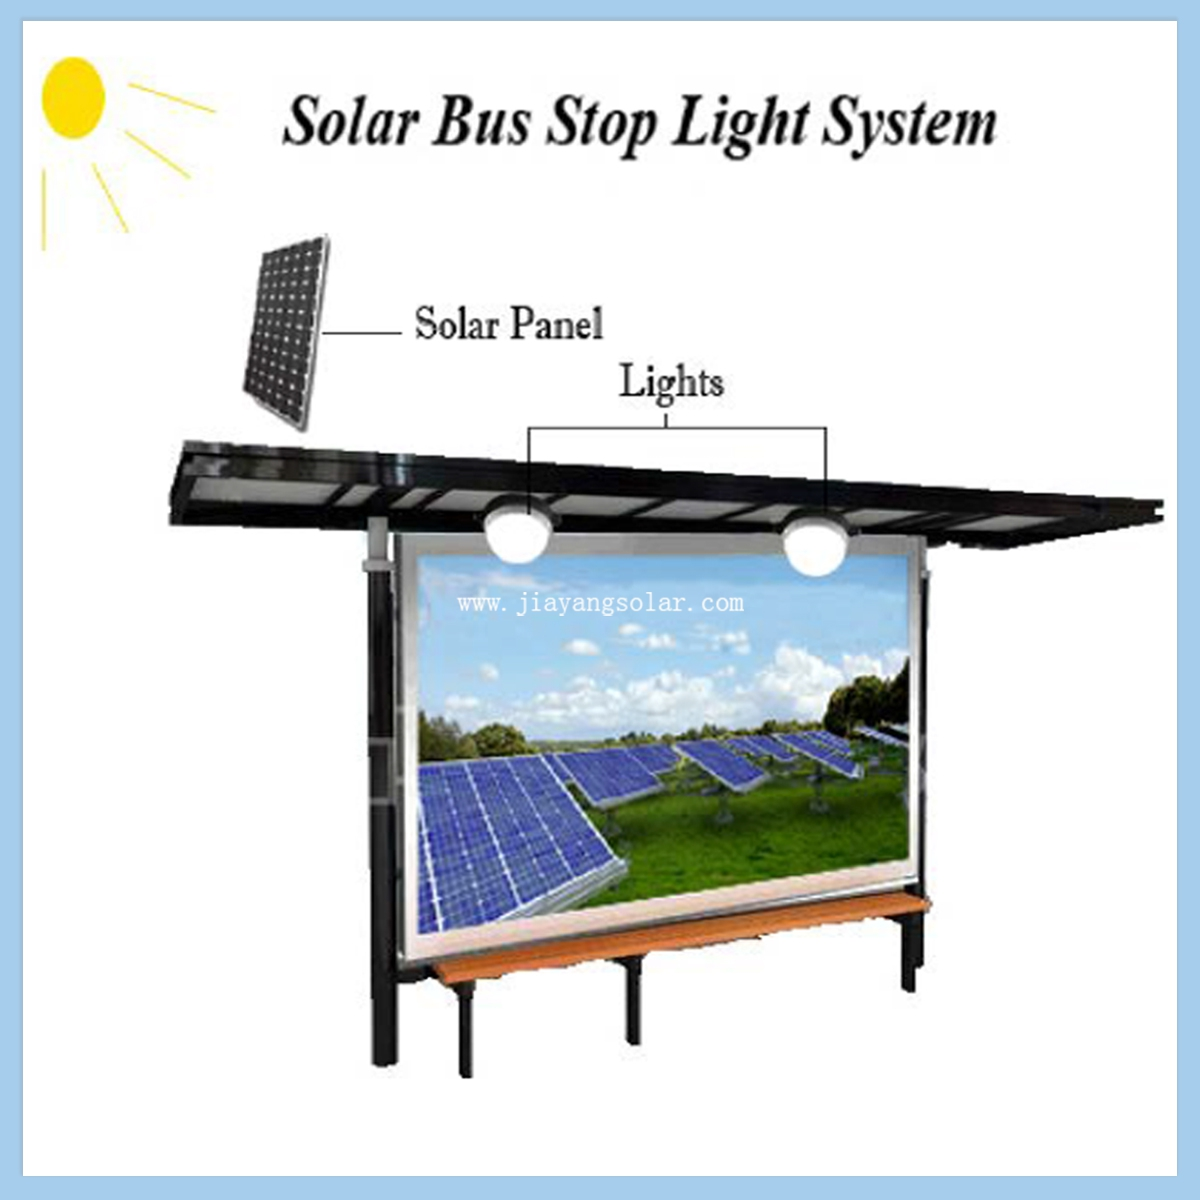 Solar Bus Stop Light systems